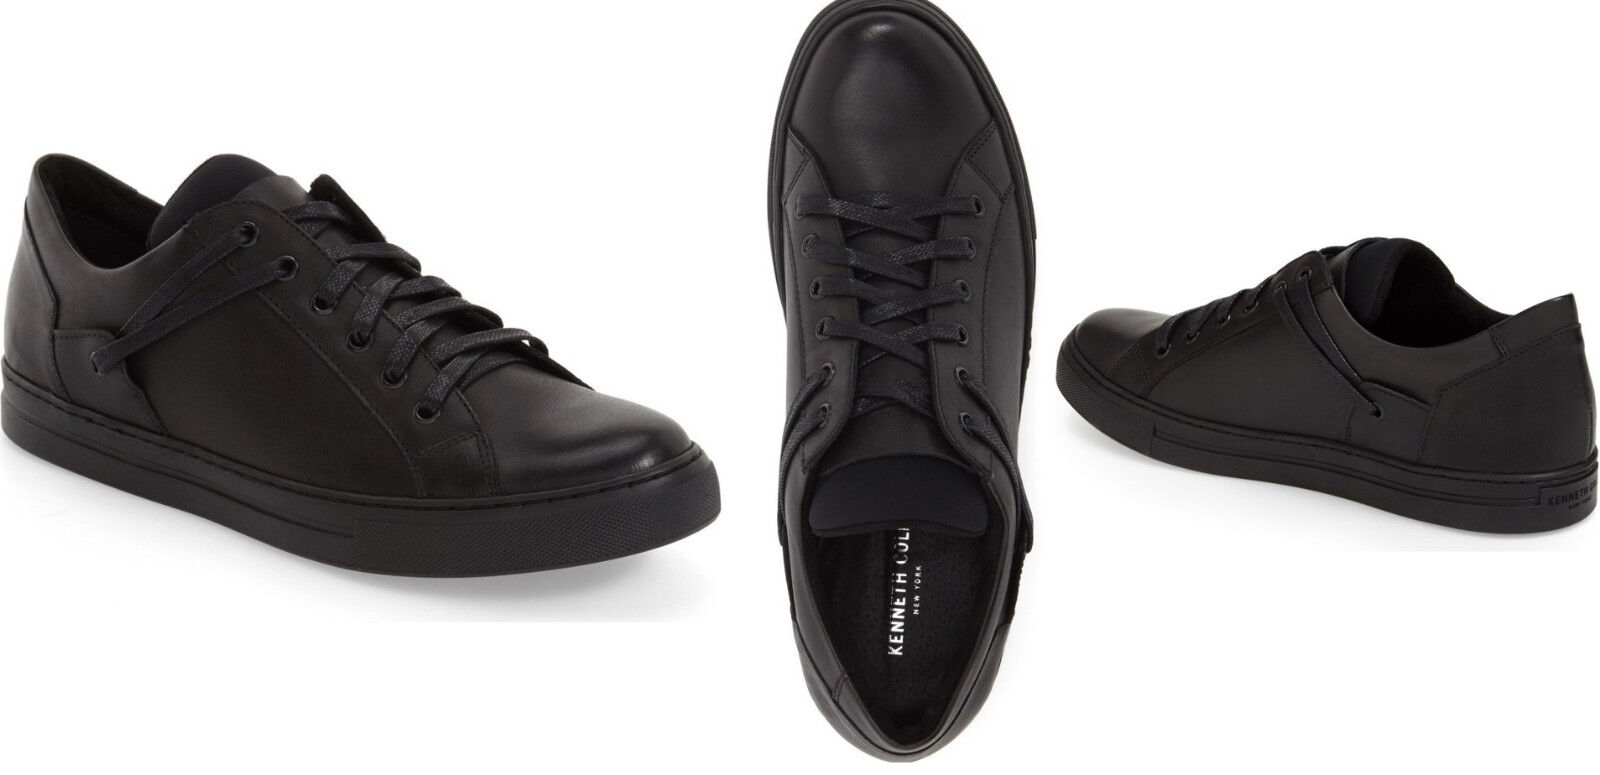 Kenneth Cole Homme baskets Chaussures Double Helix II Baskets Chaussures En Cuir 11 M